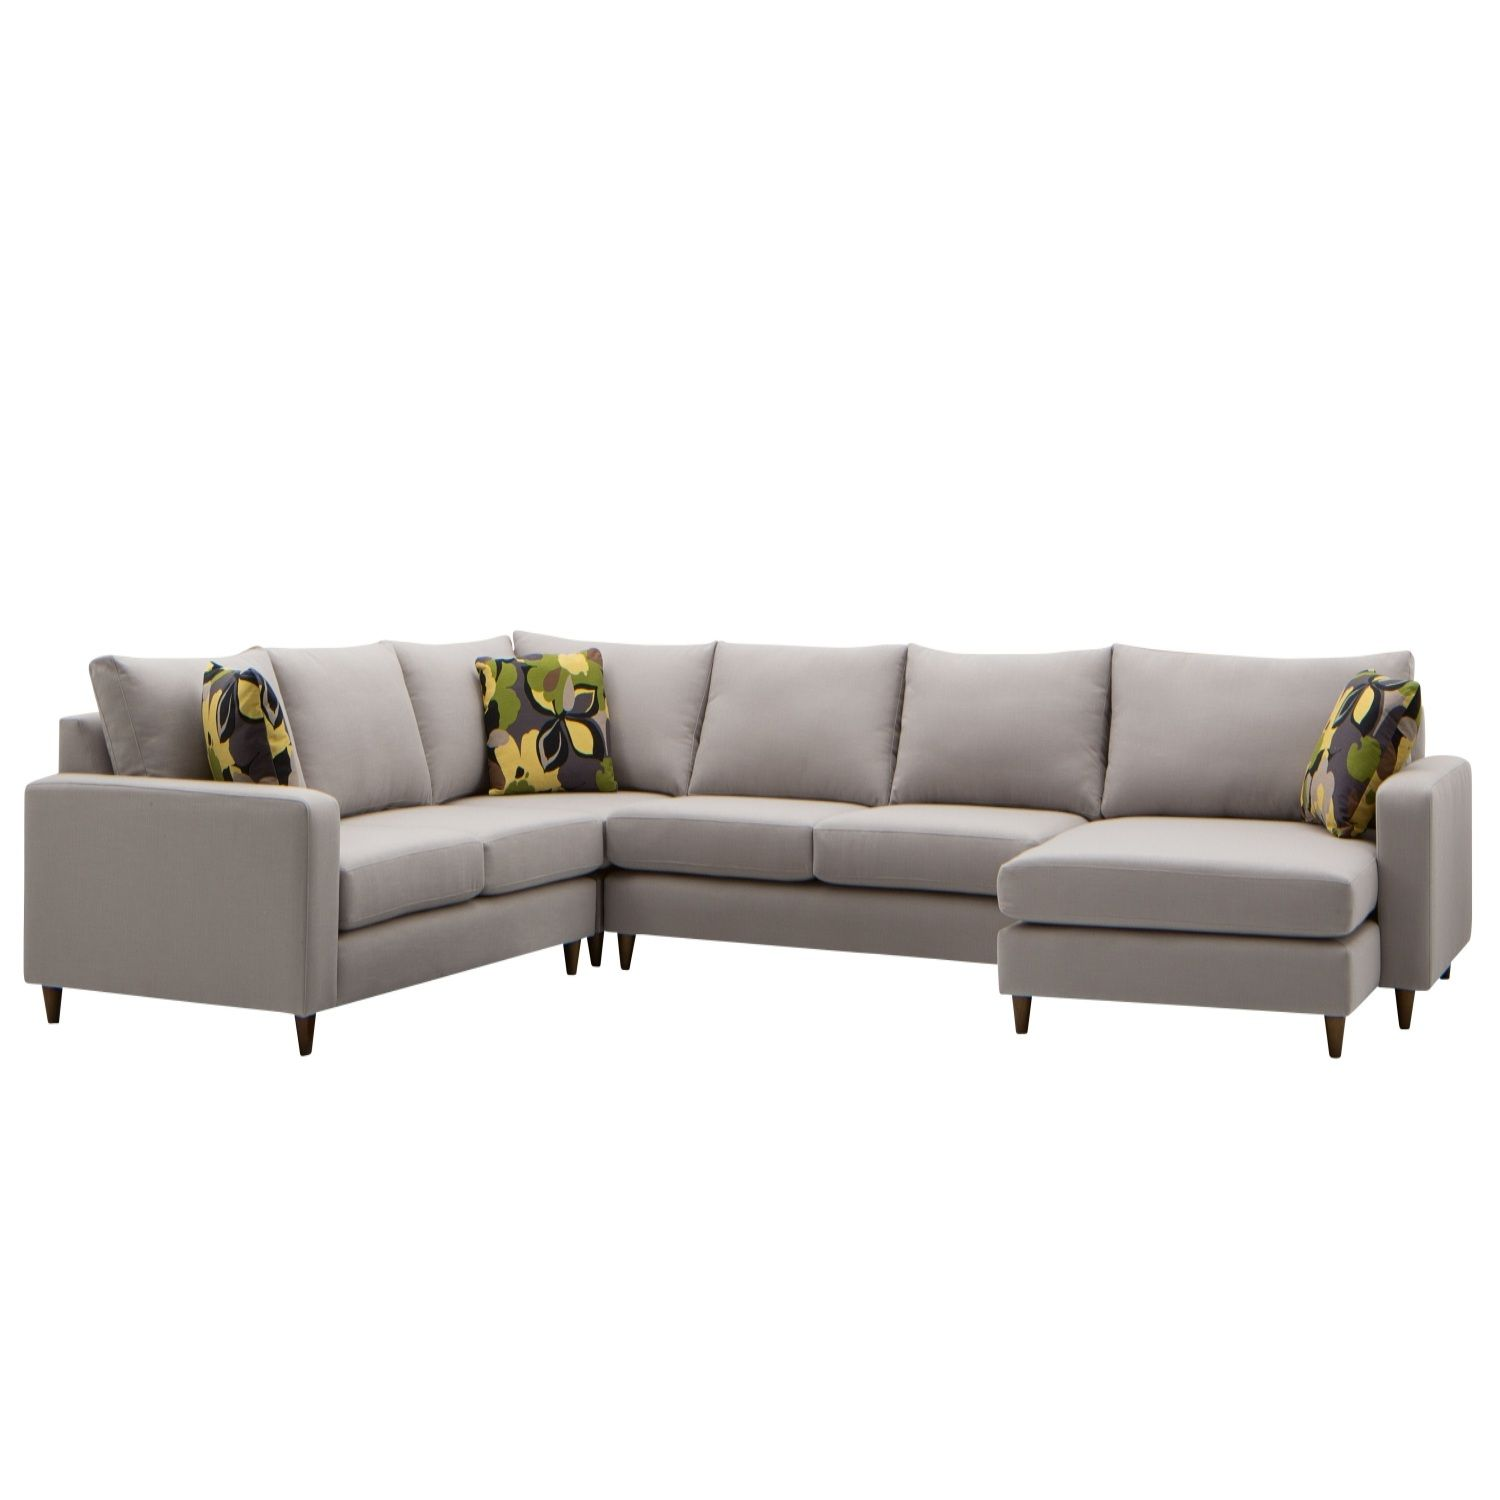 Cheap Modular Lounges Baxter Modular Lounge With Chaise From Domayne Online Furniture